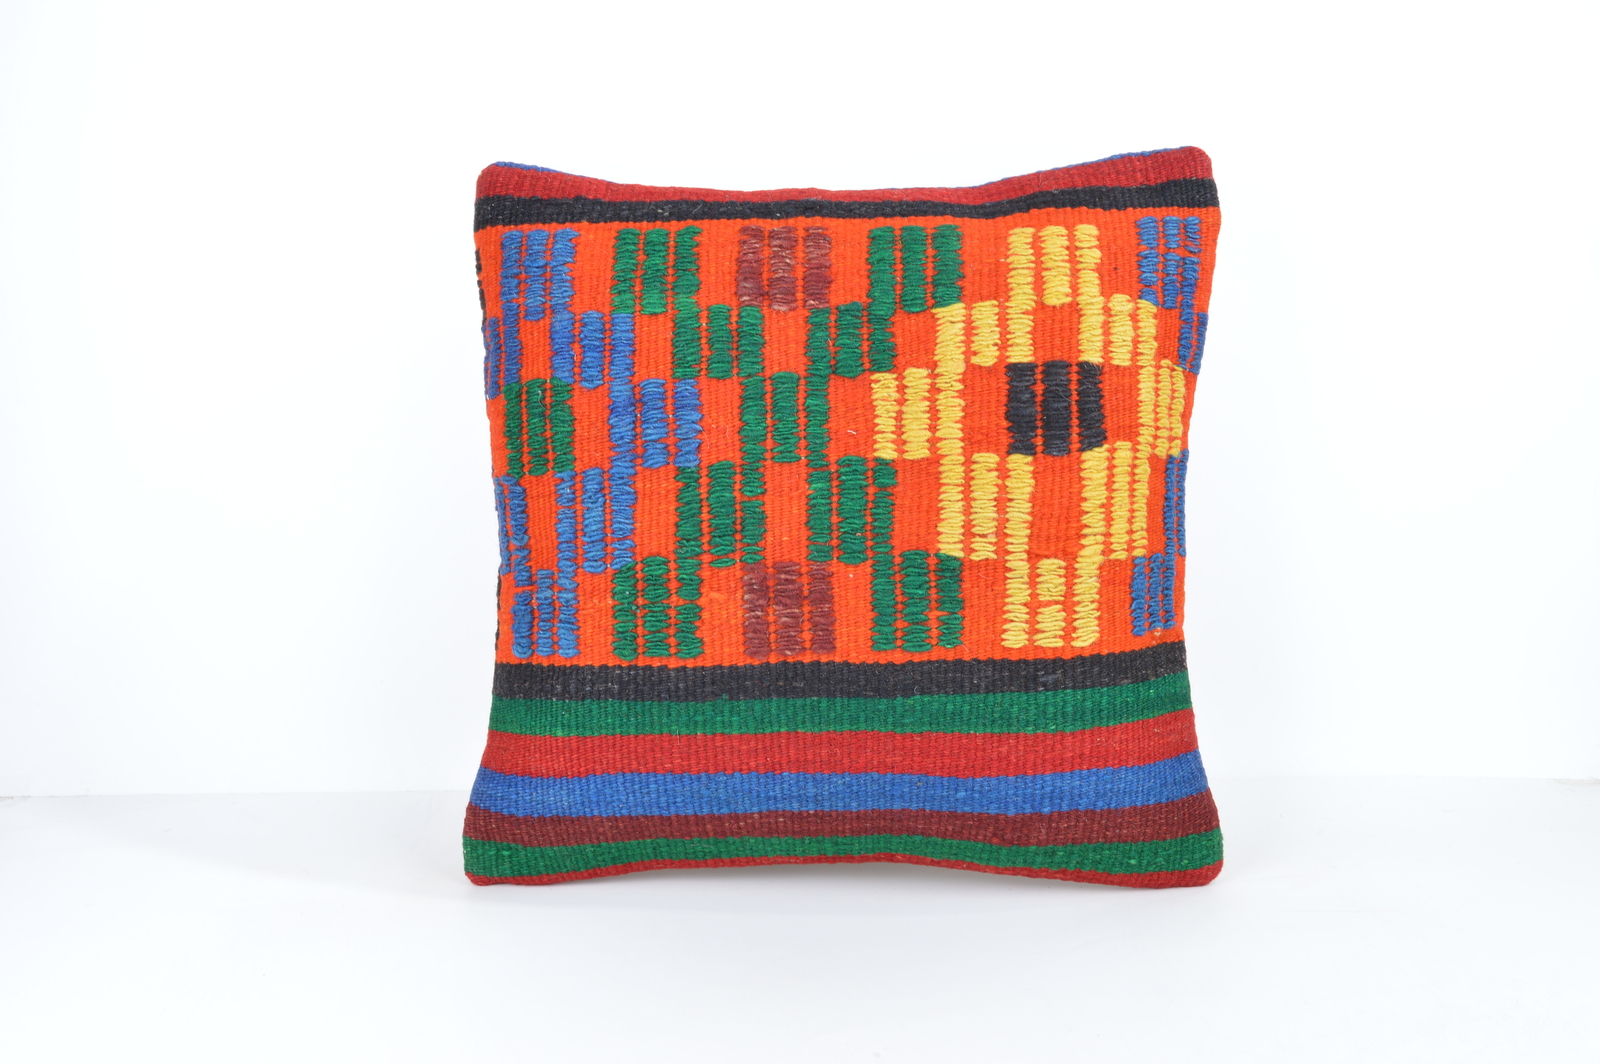 Accent embroidered pillows cute pillows modern pillows throw pillow orange green - Pillows